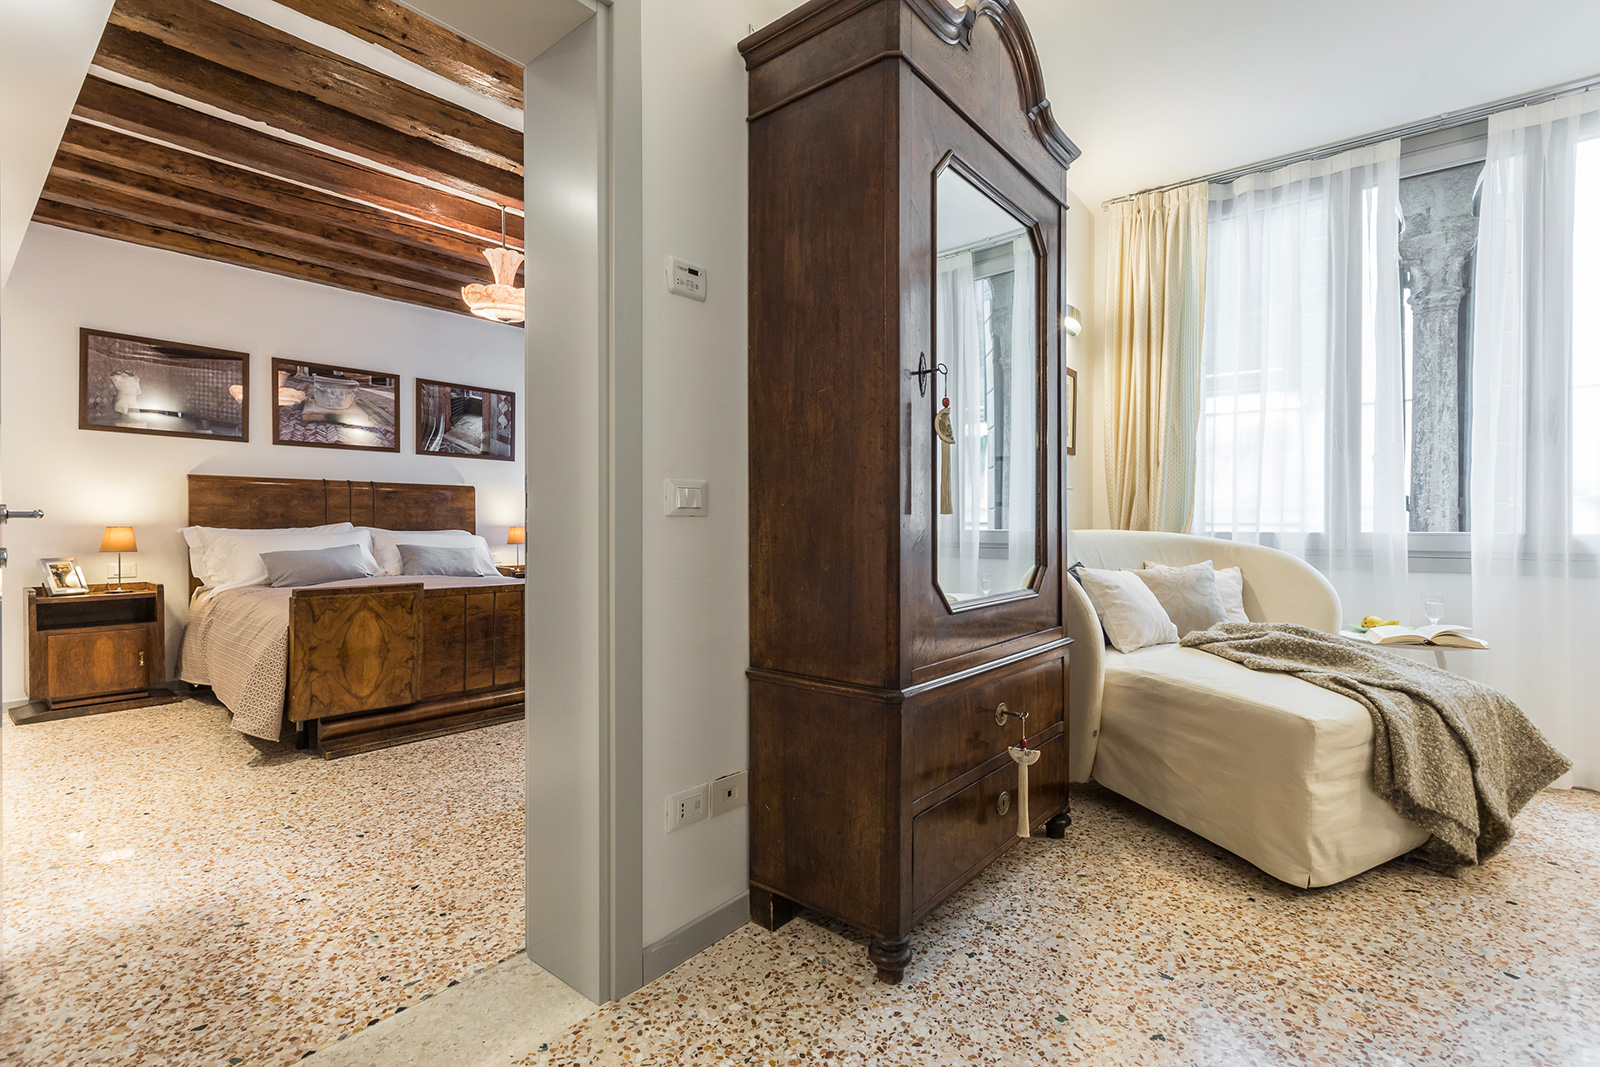 from the main bedroom you reach the central room where a small wardrobe and a day bed is located